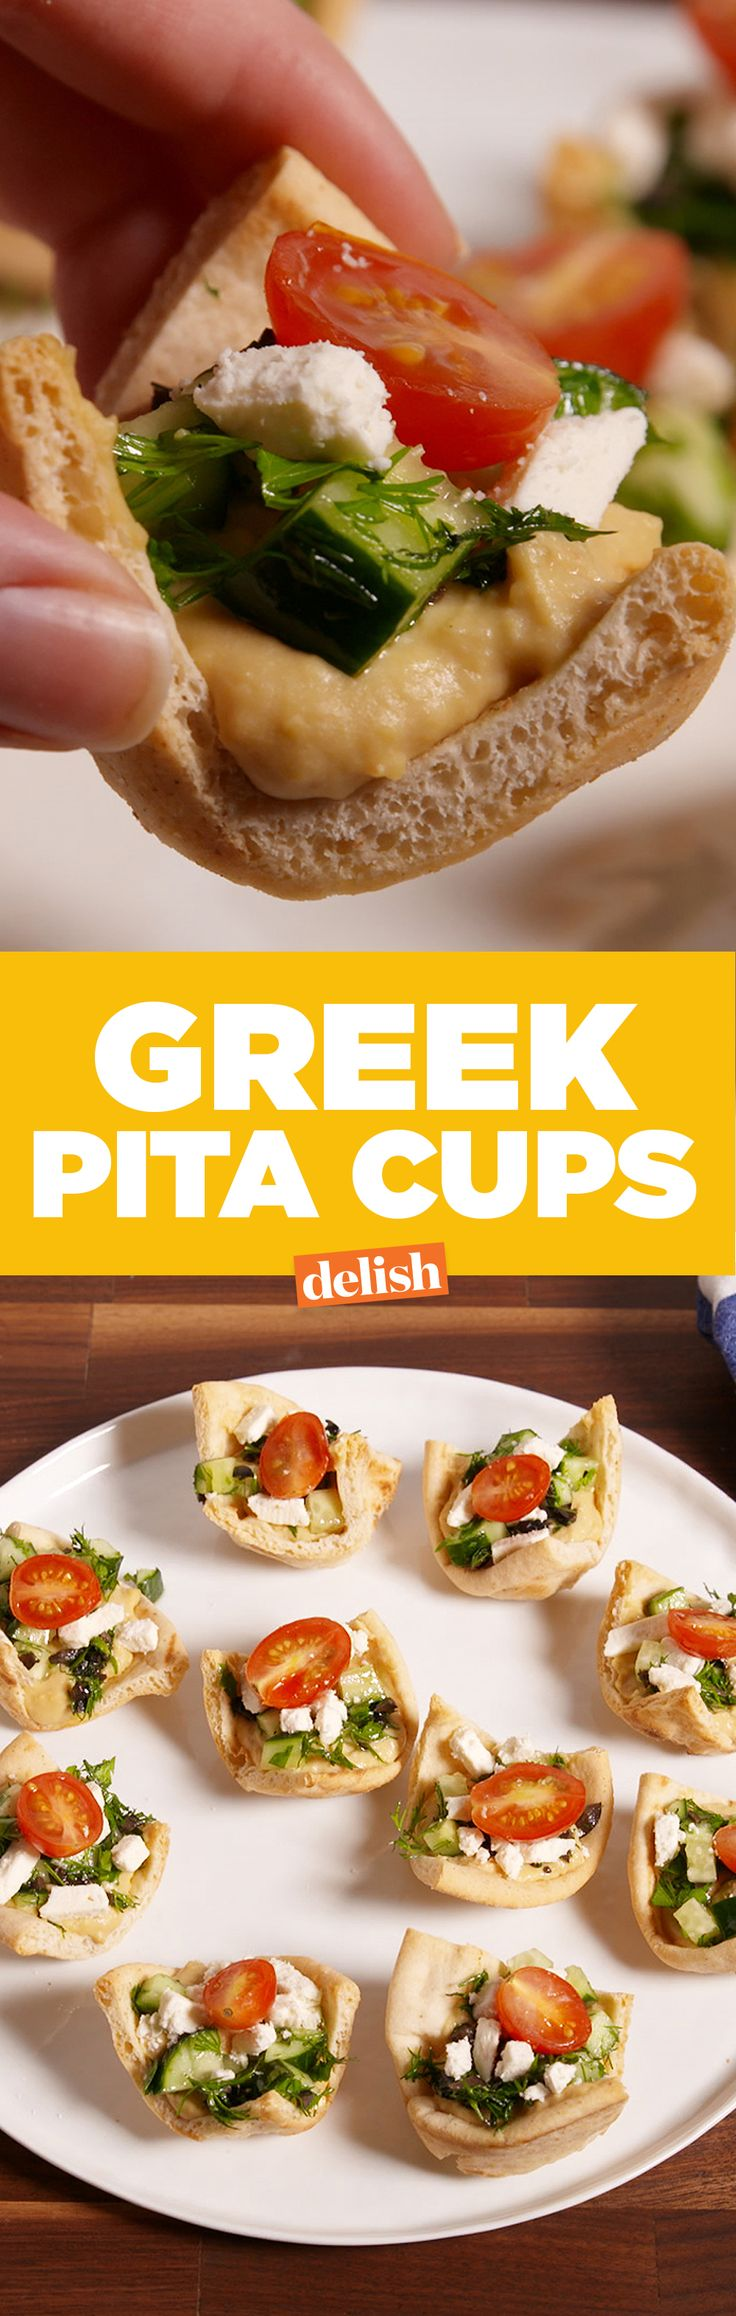 Greek Pita Cups are the healthy snack you need right now. Get the recipe from Delish.com.